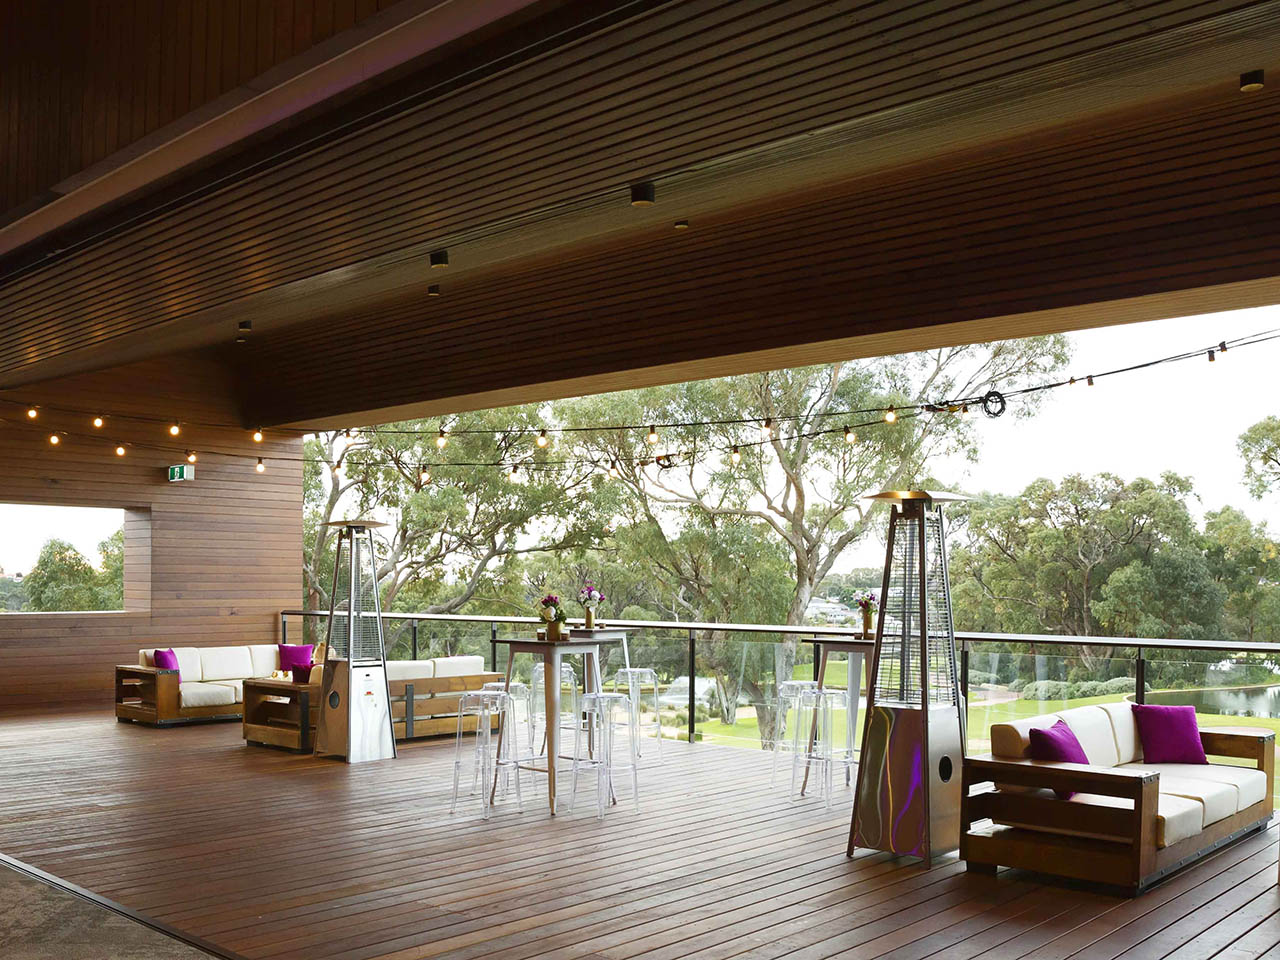 Perth venue with views